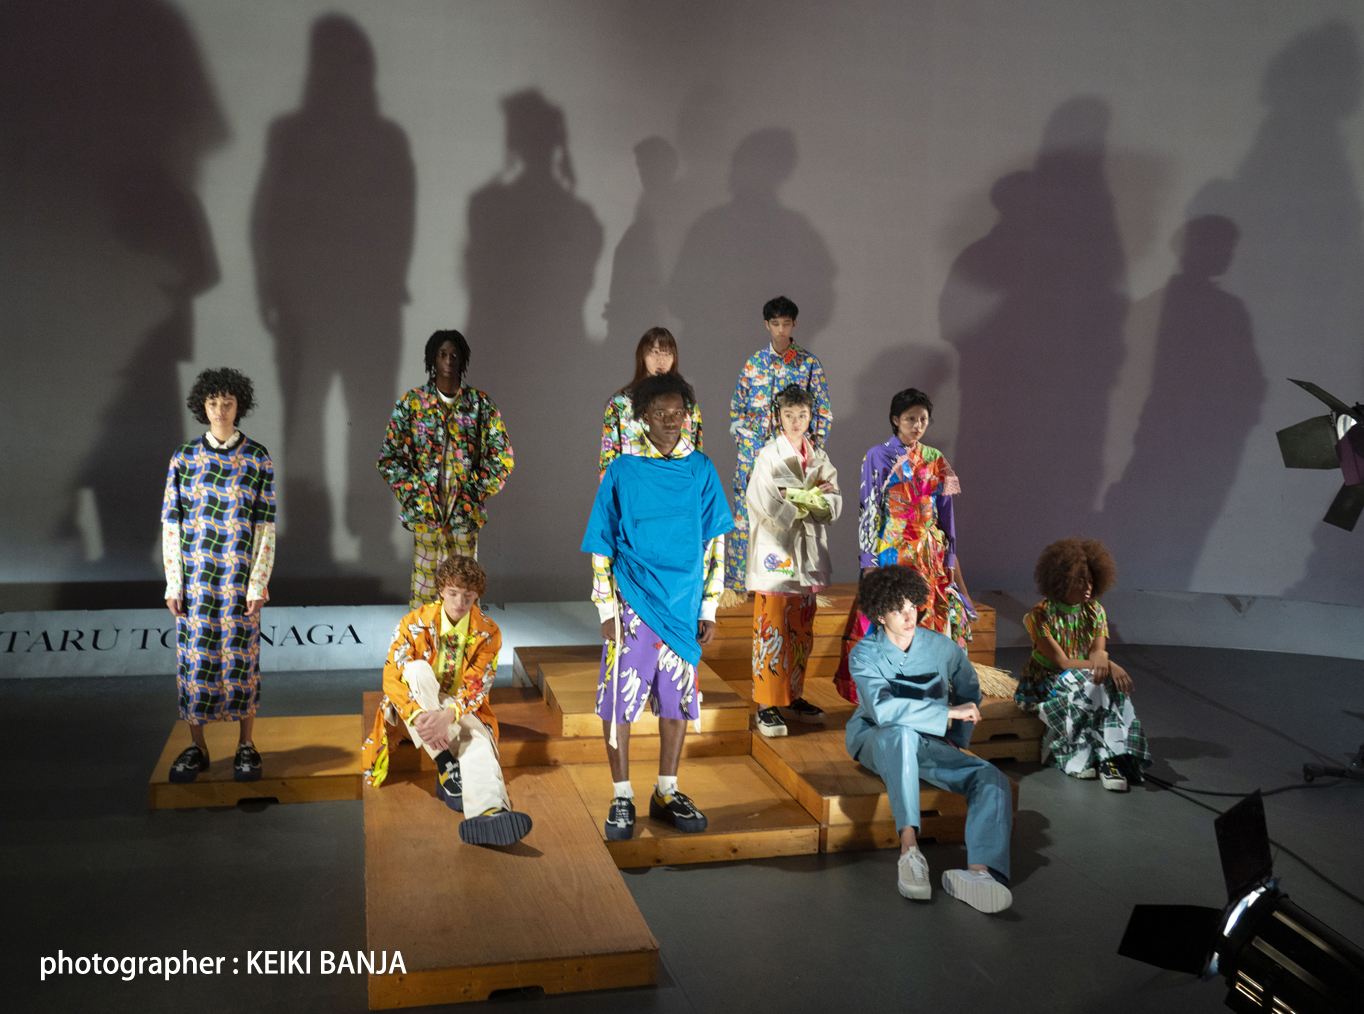 WATARU TOMINAGA EXHIBITION SPRING SUMMER 2020